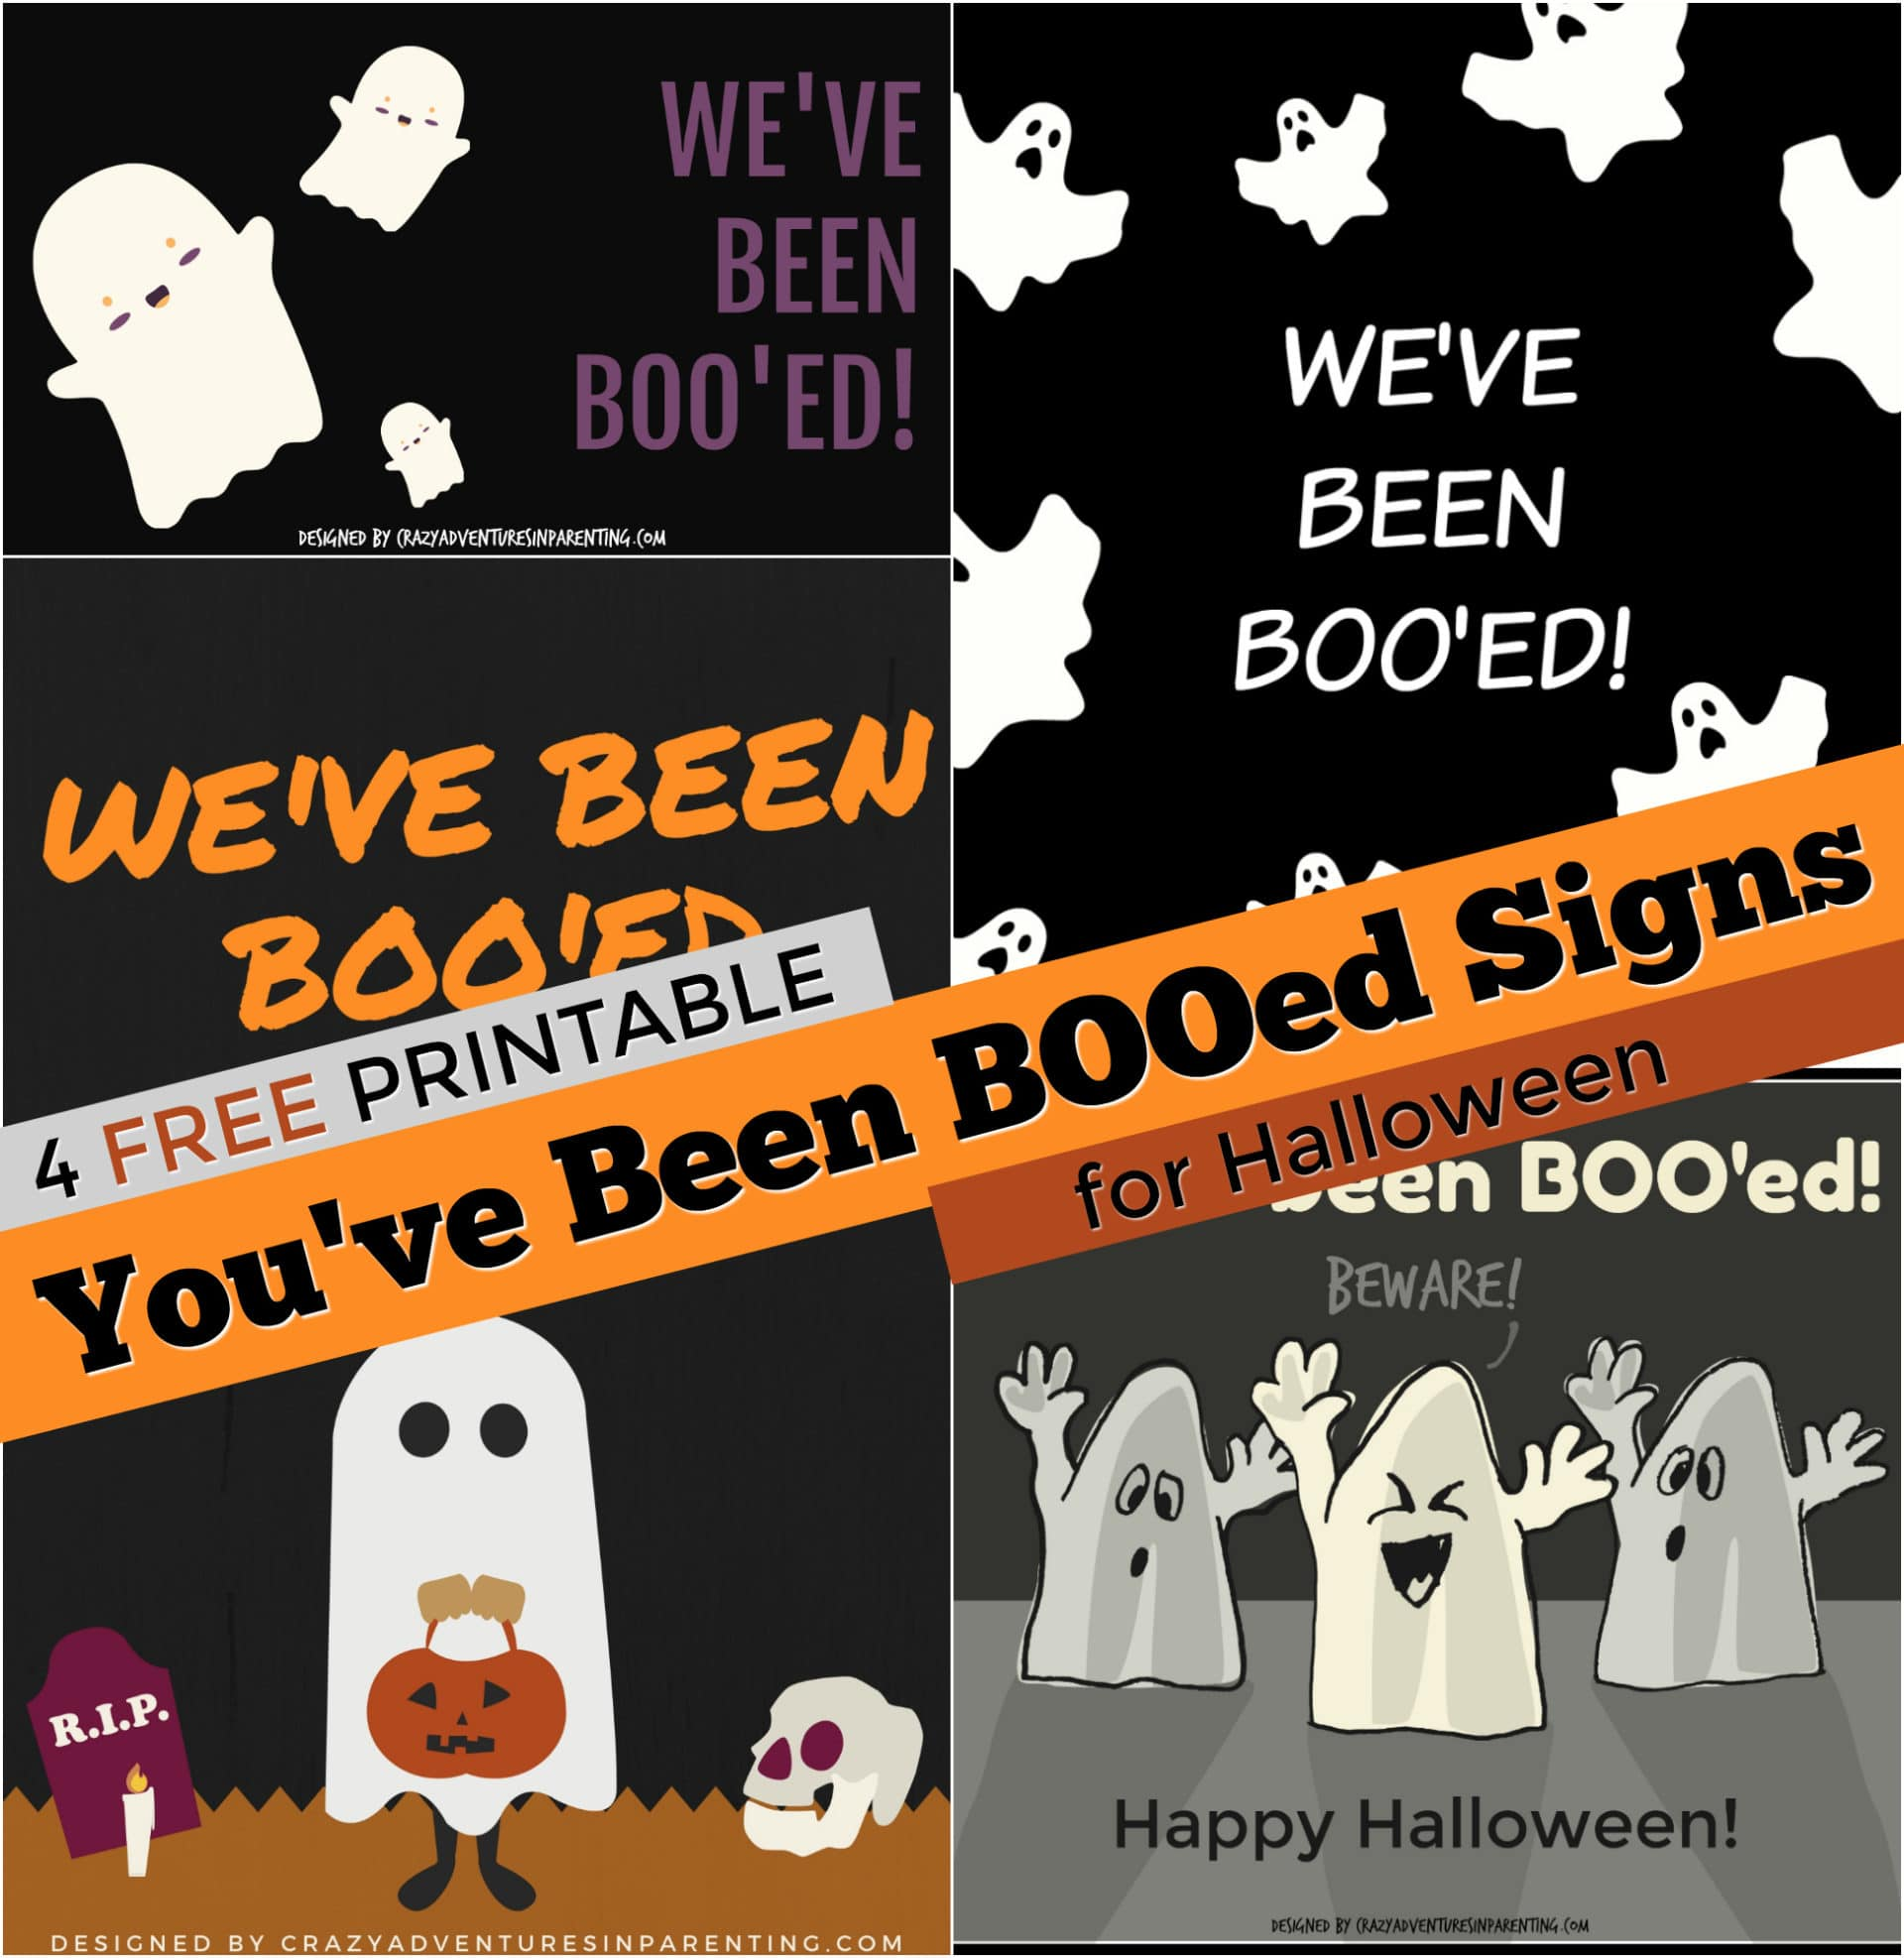 4 FREE Printable You've Been Boo'ed Signs for Halloween